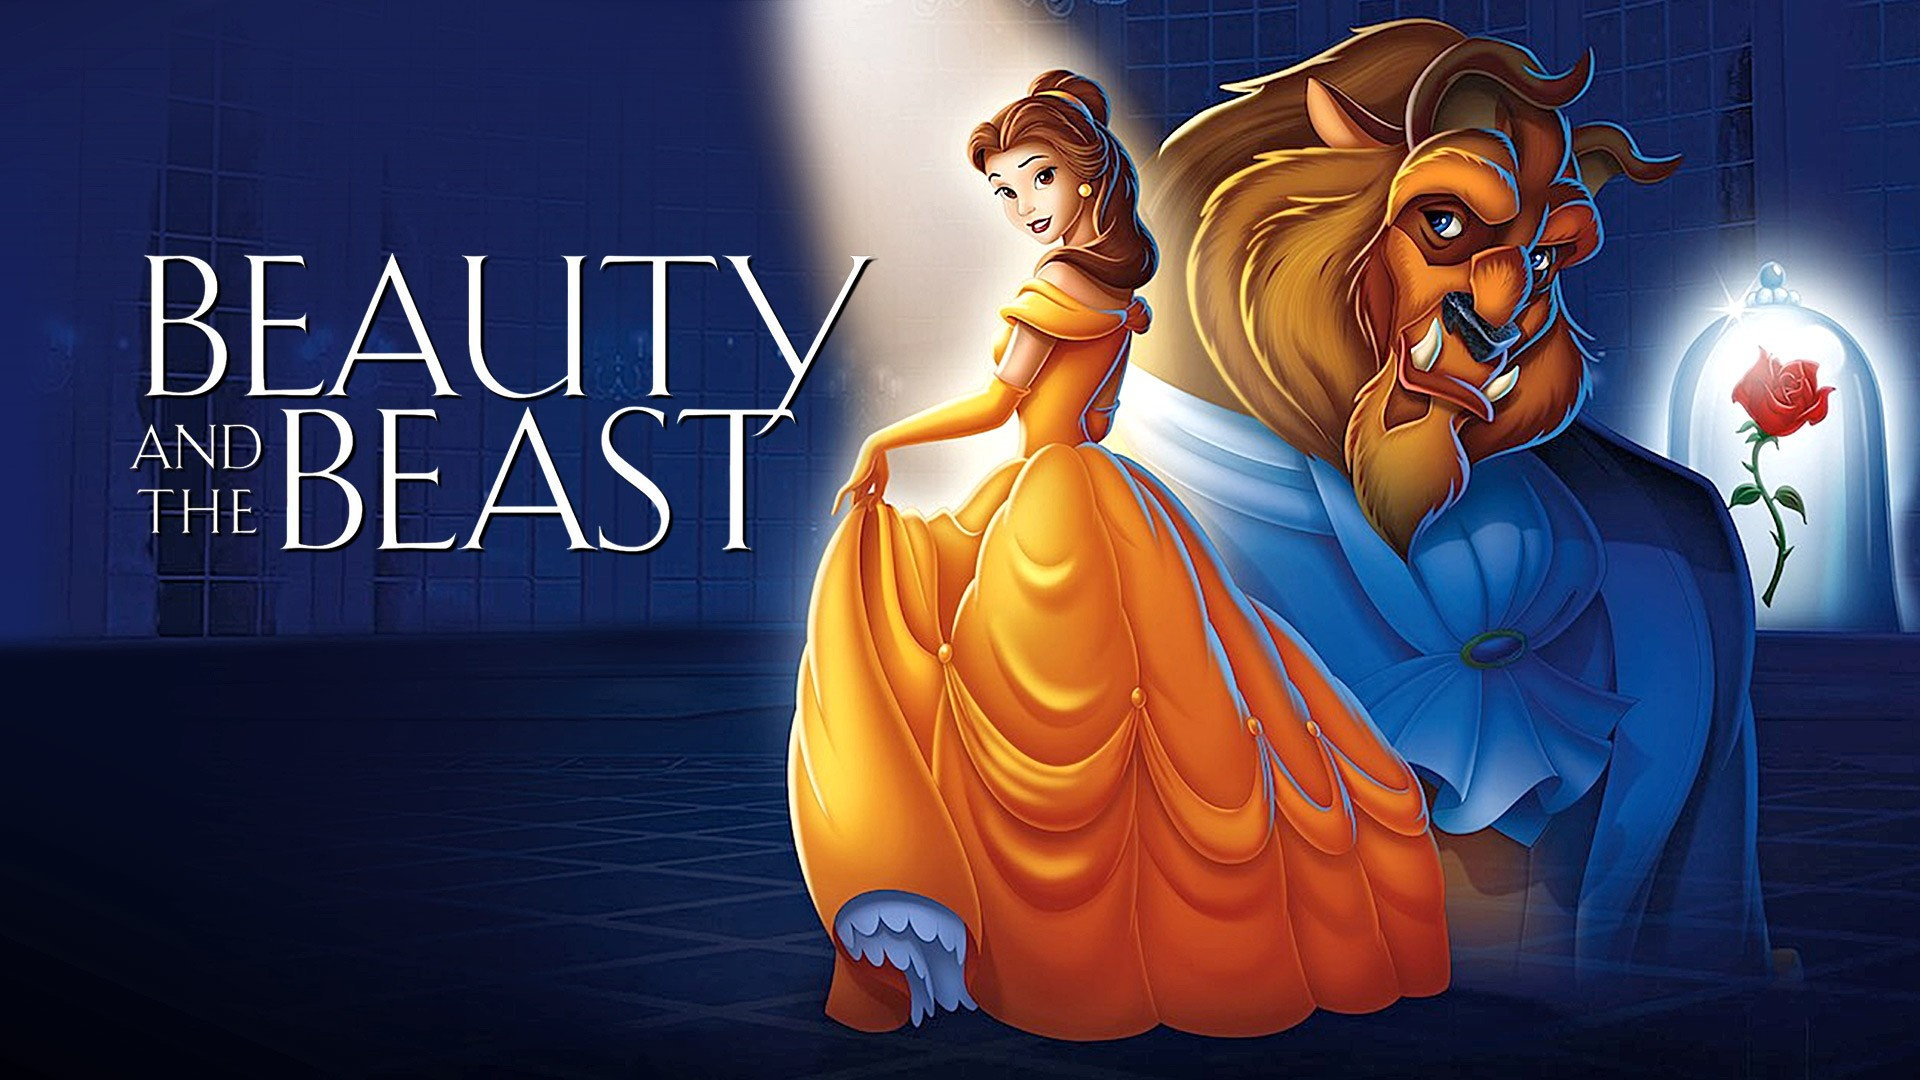 20 Weeks of Disney Animation: 'Beauty and the Beast' -